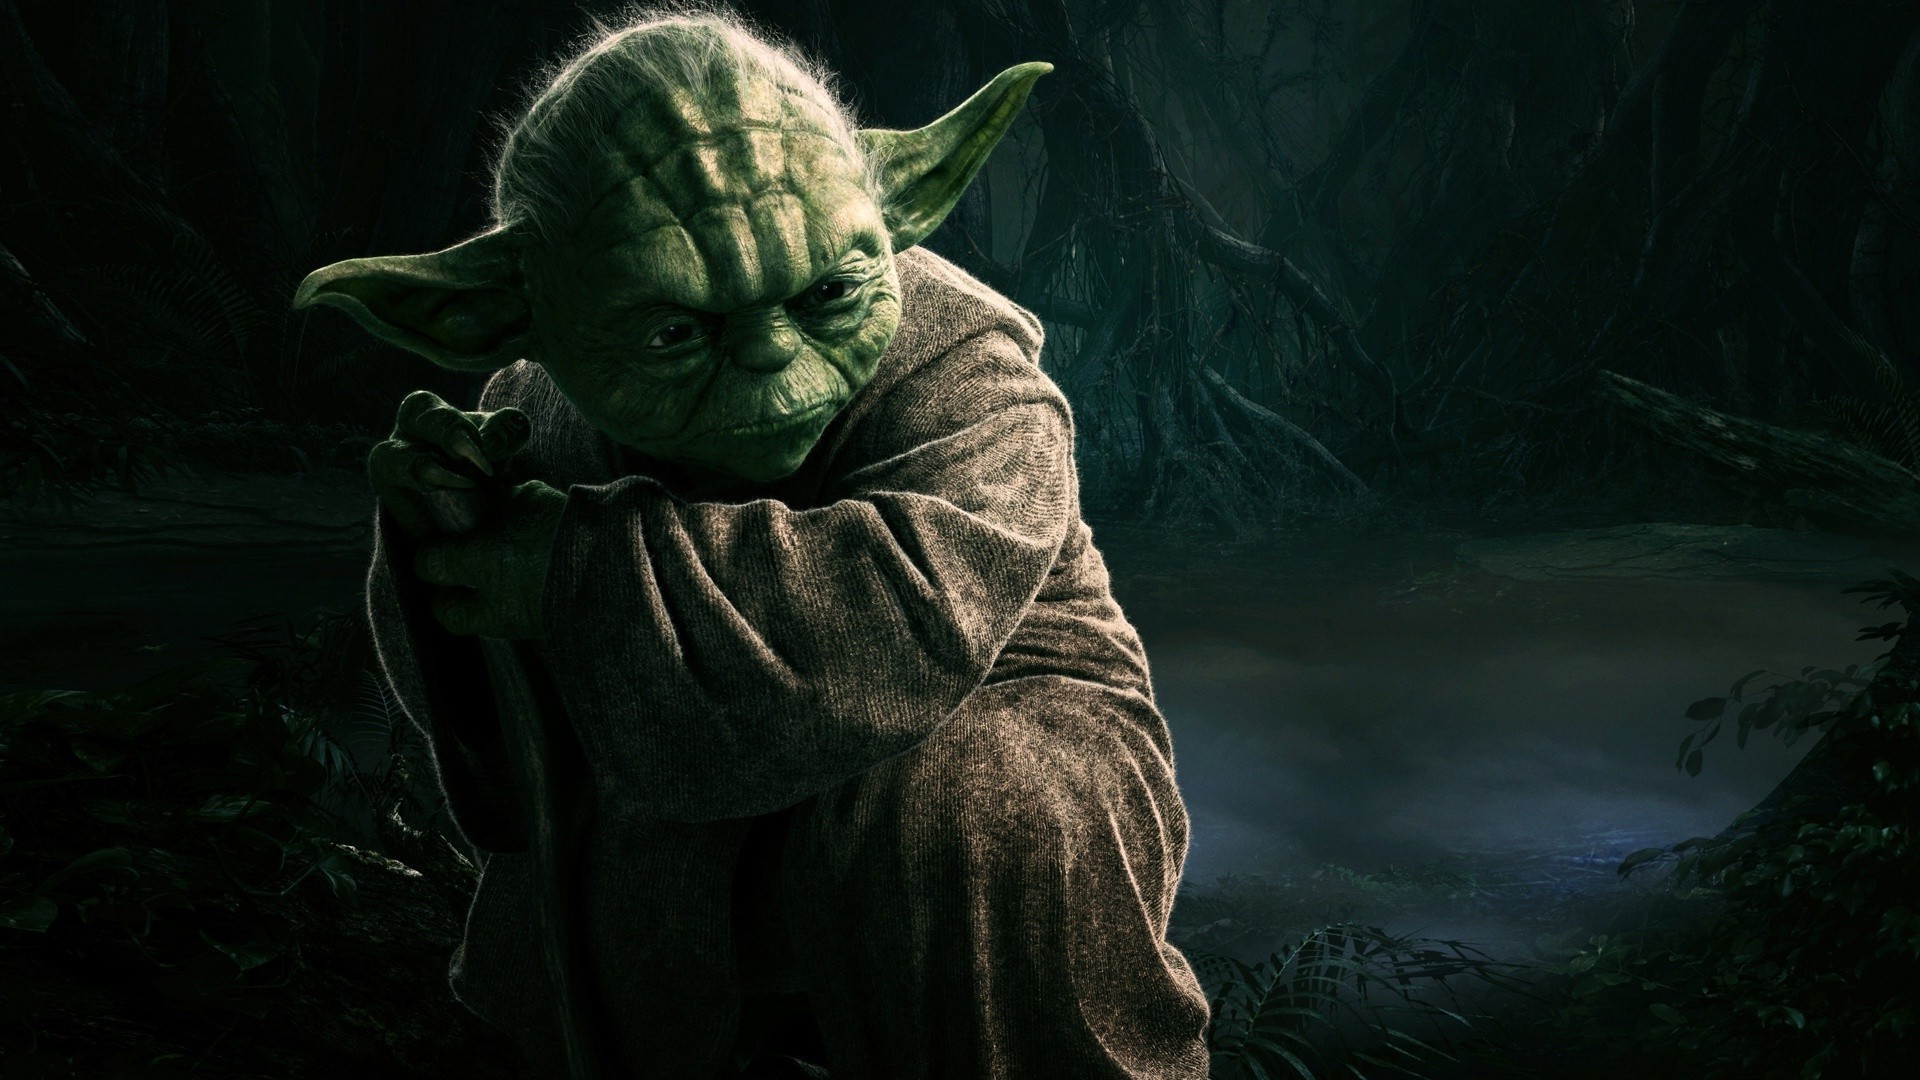 Res: 1920x1080, Star Wars Jedi Wallpapers Picture